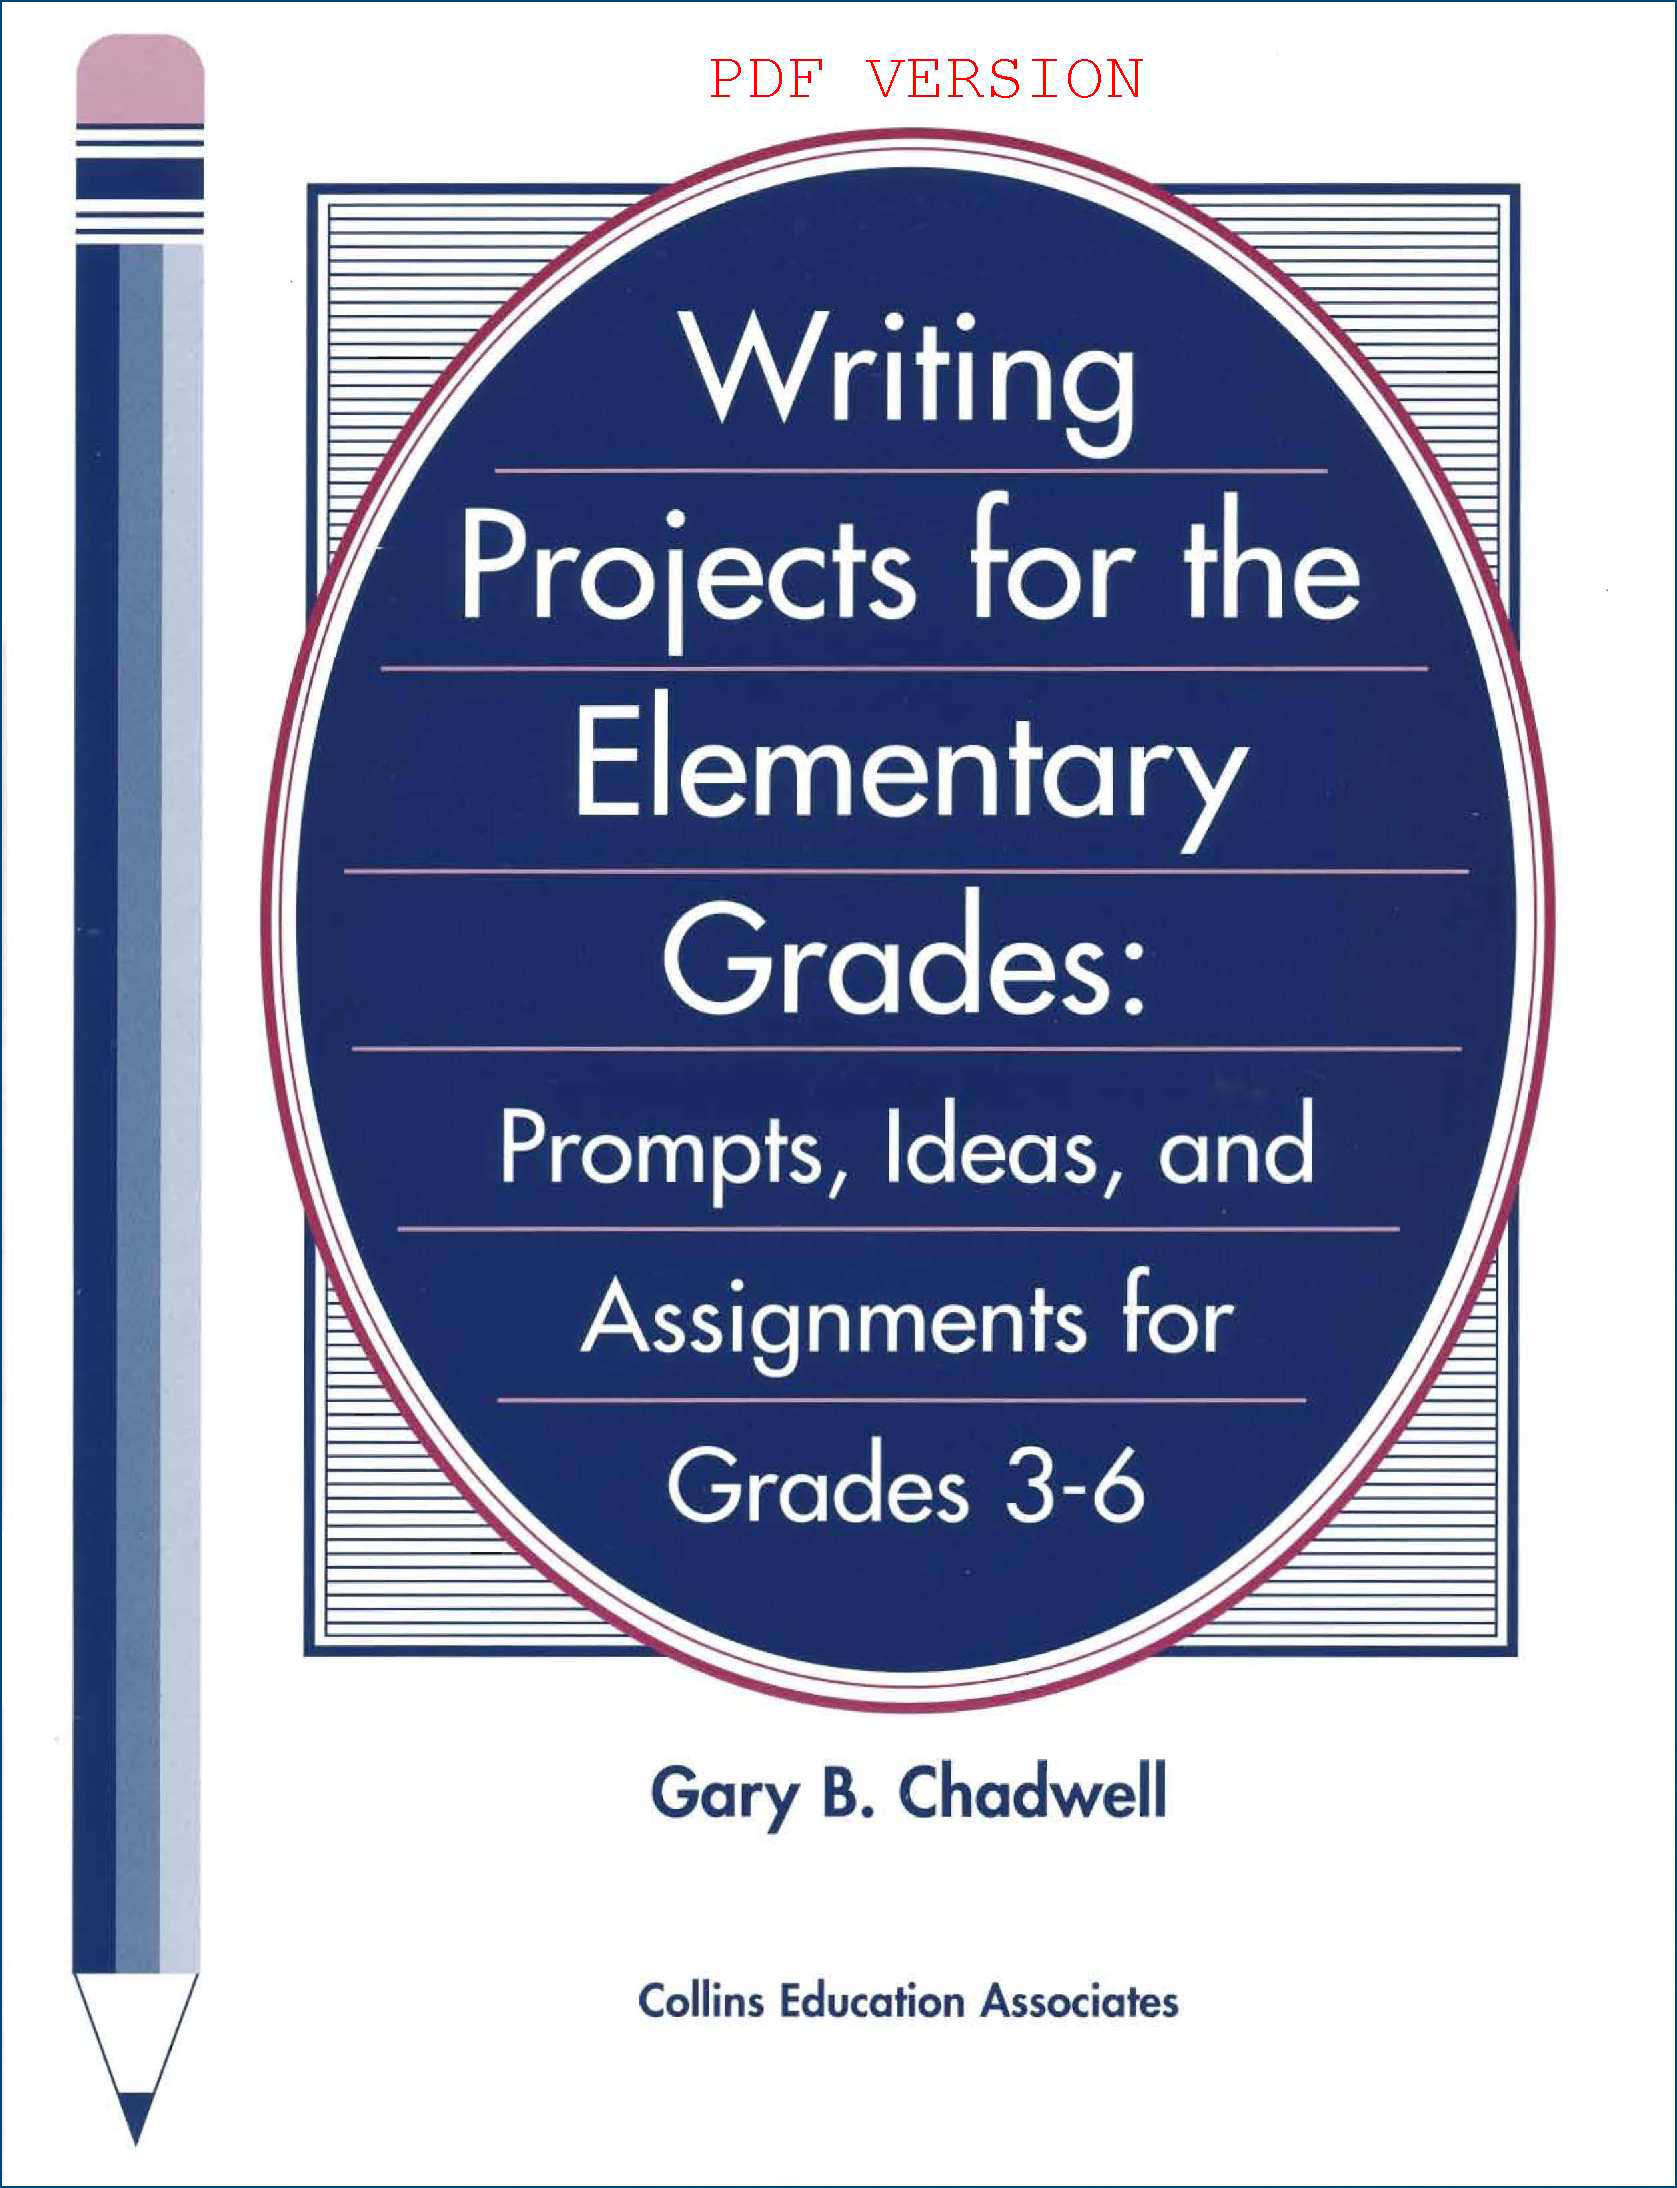 grading essays comments Efficiently grading student writing comments are most helpful on drafts or works-in-progress that allow the student to improve the work on final papers.